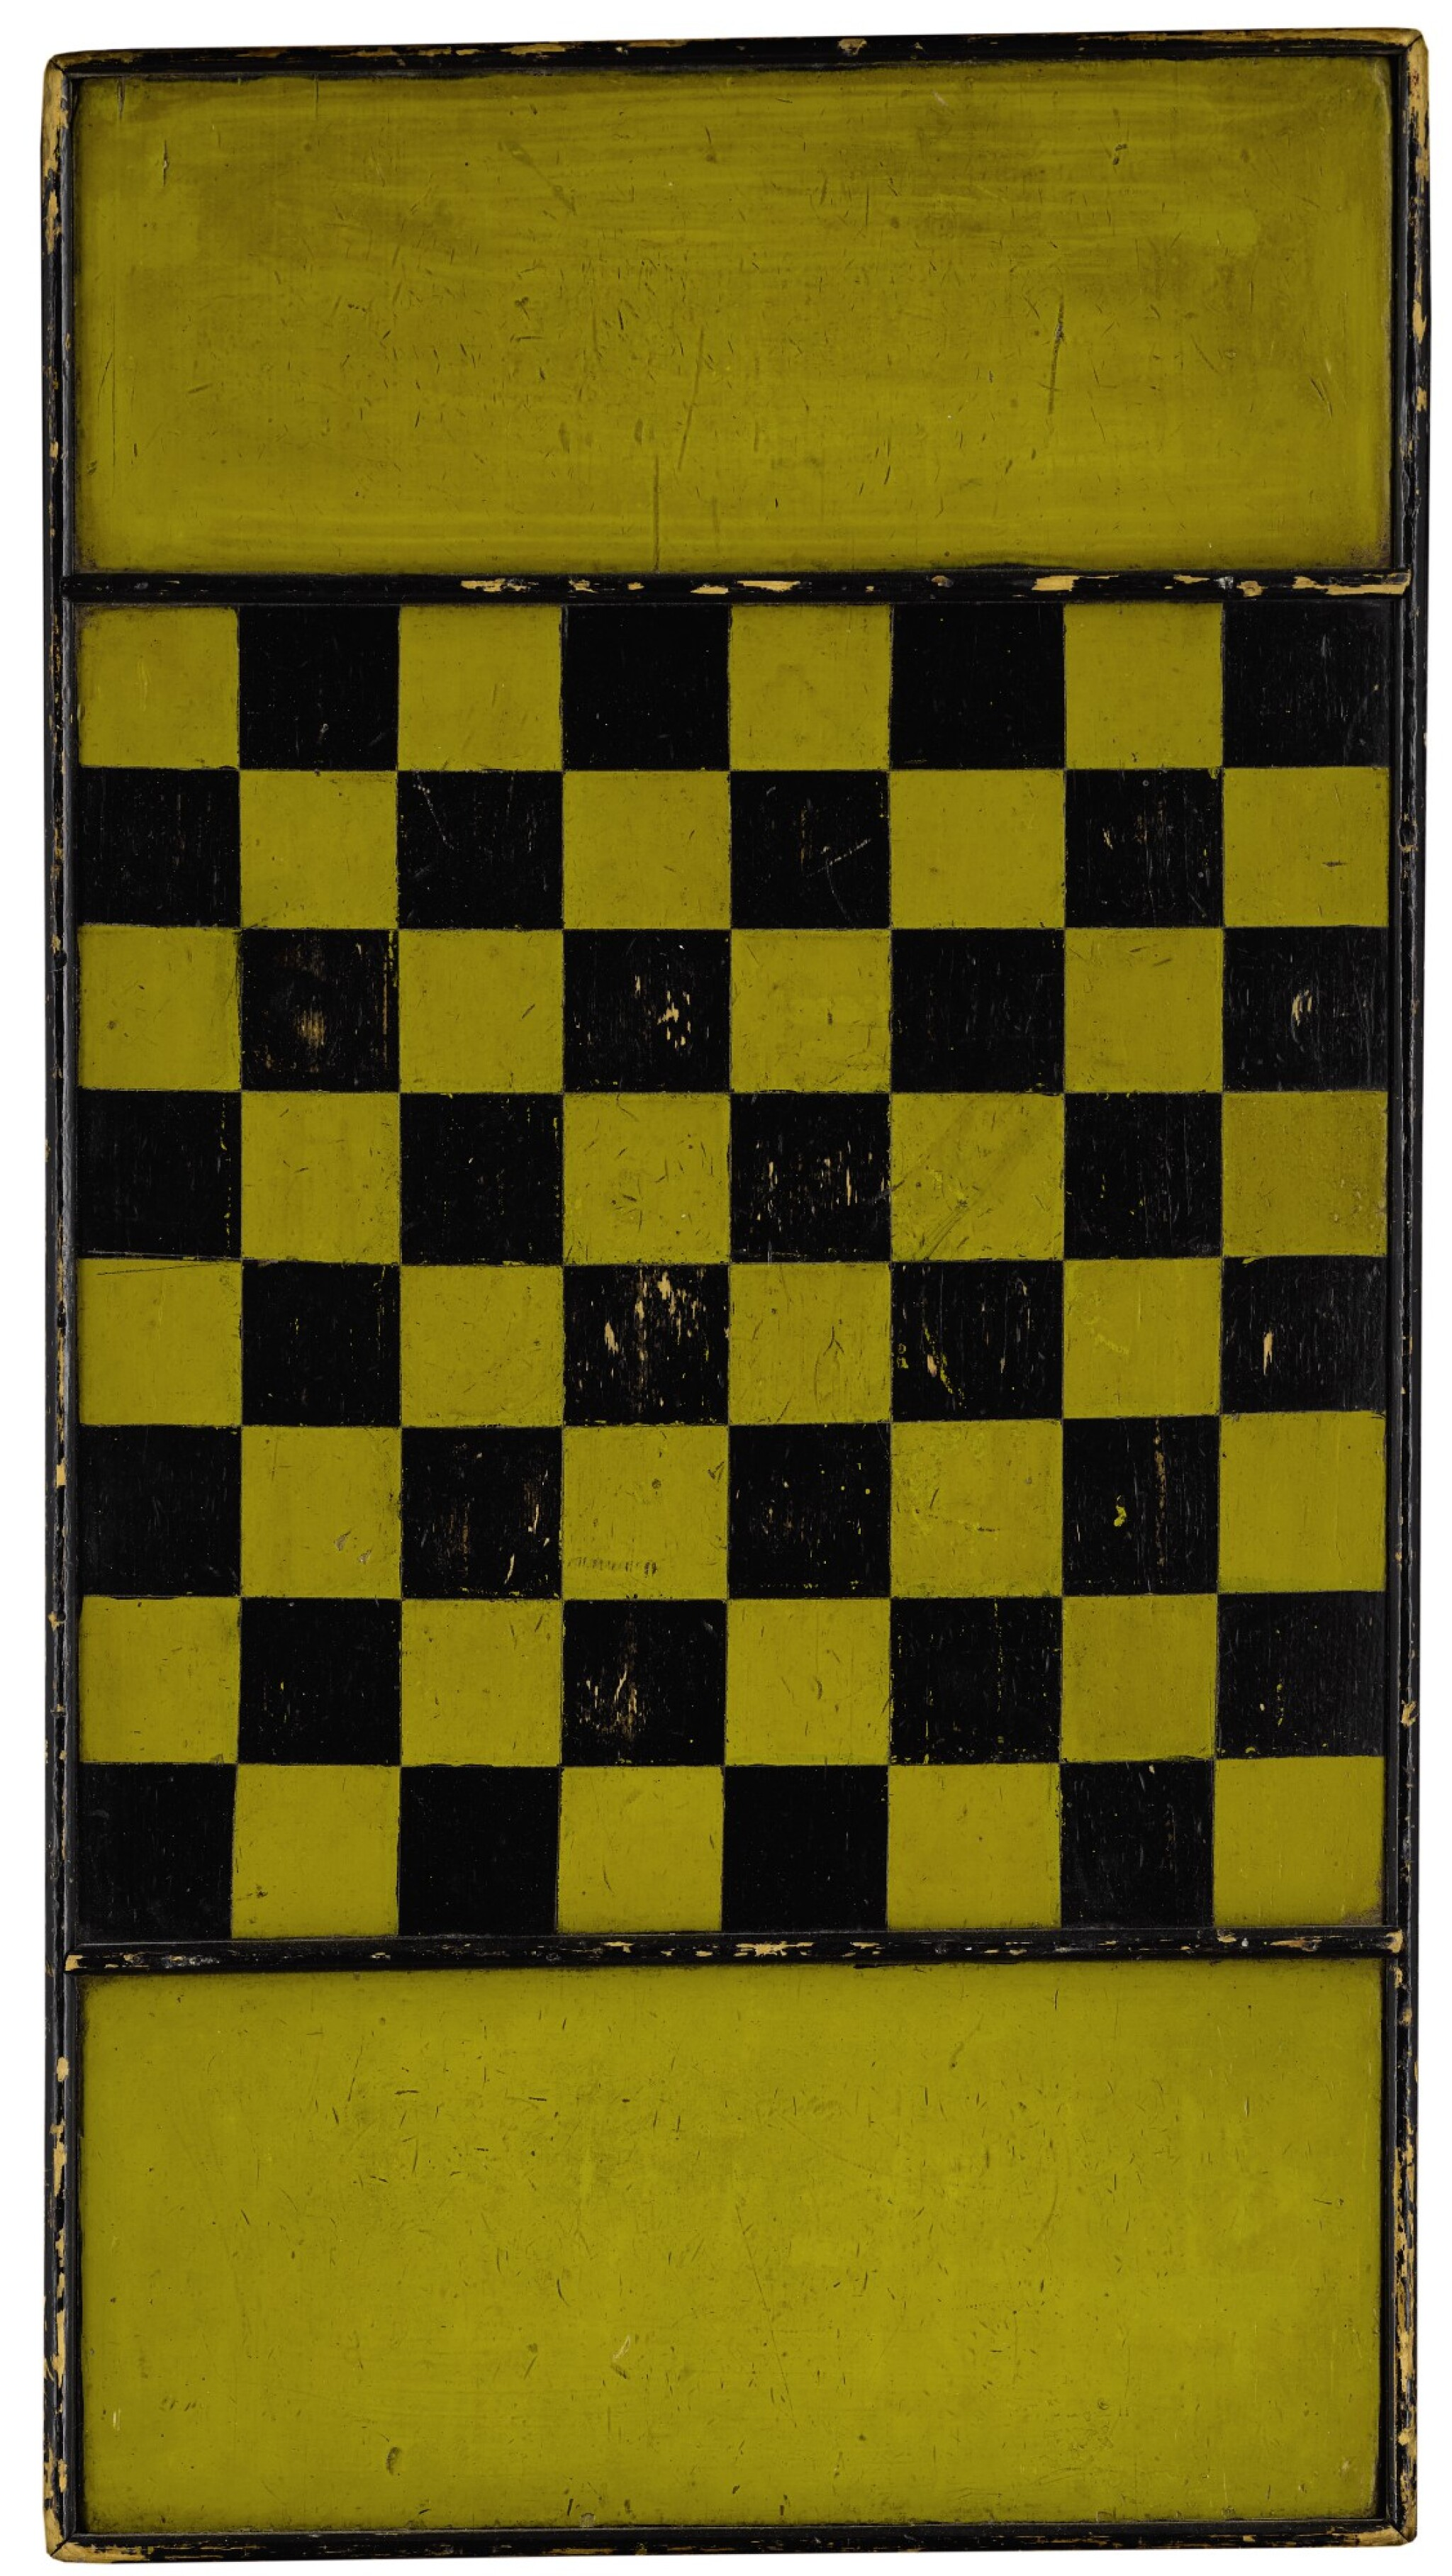 View full screen - View 1 of Lot 1449. AMERICAN YELLOW AND BLACK PAINTED WOODEN CHECKER GAMEBOARD, LATE 19TH CENTURY.